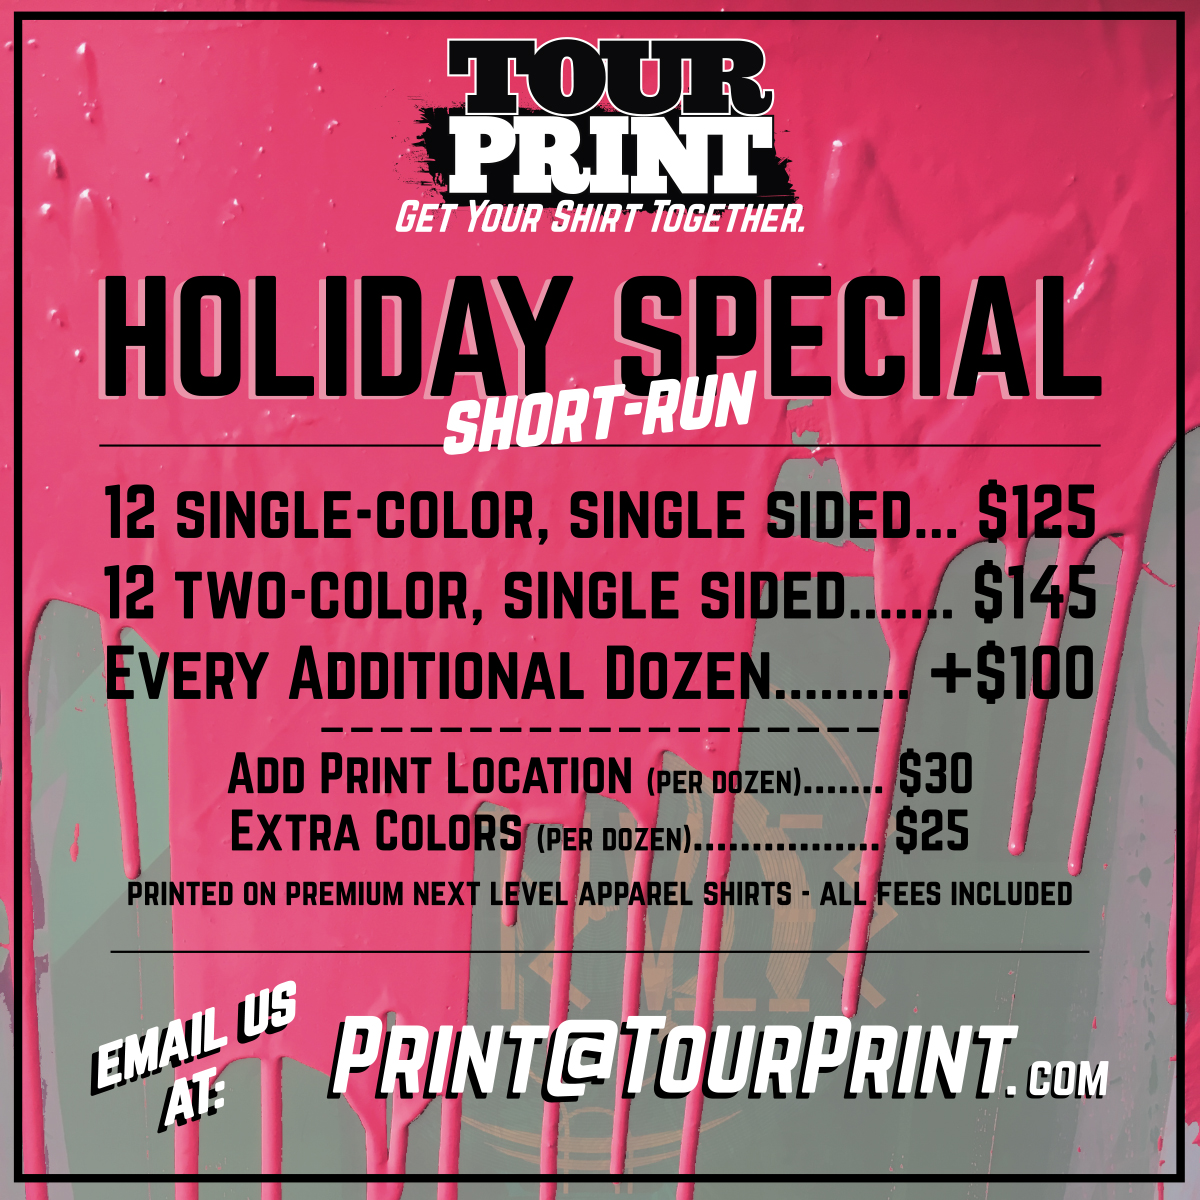 Tour Print Holiday Special AD-2.0.jpg